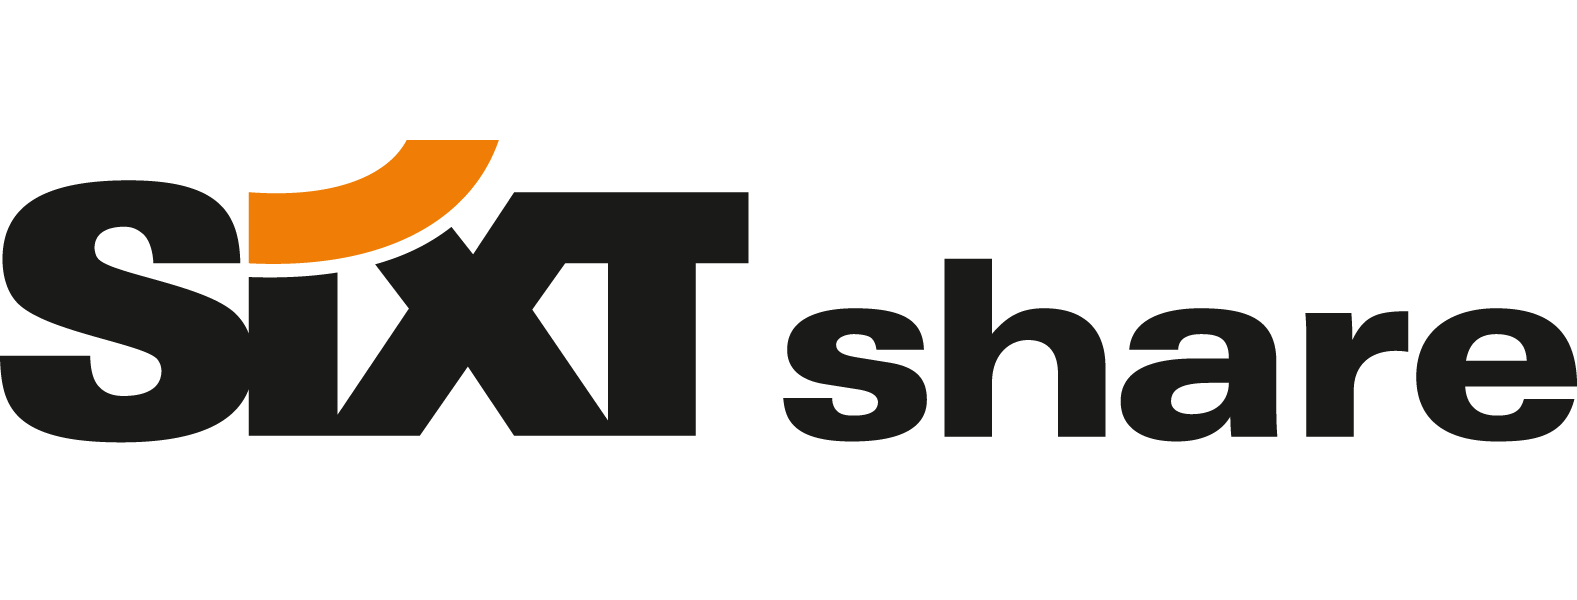 Sixt_share2.png